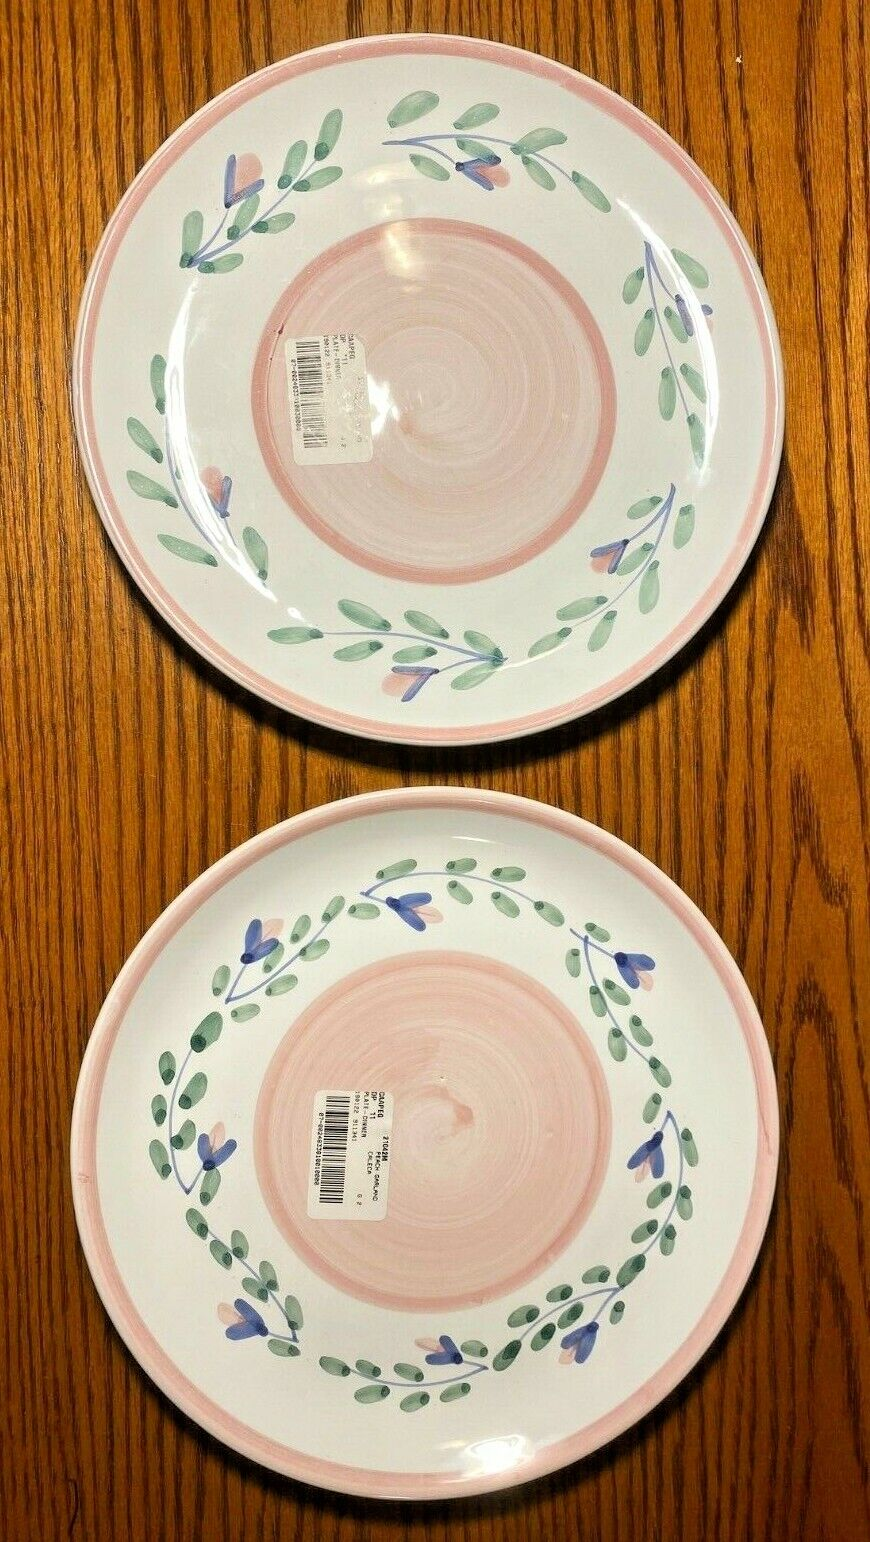 Caleca Set Of 2 Unused Peach Garland Dinner Plates, Made In Italy, Hand Painted - $32.95